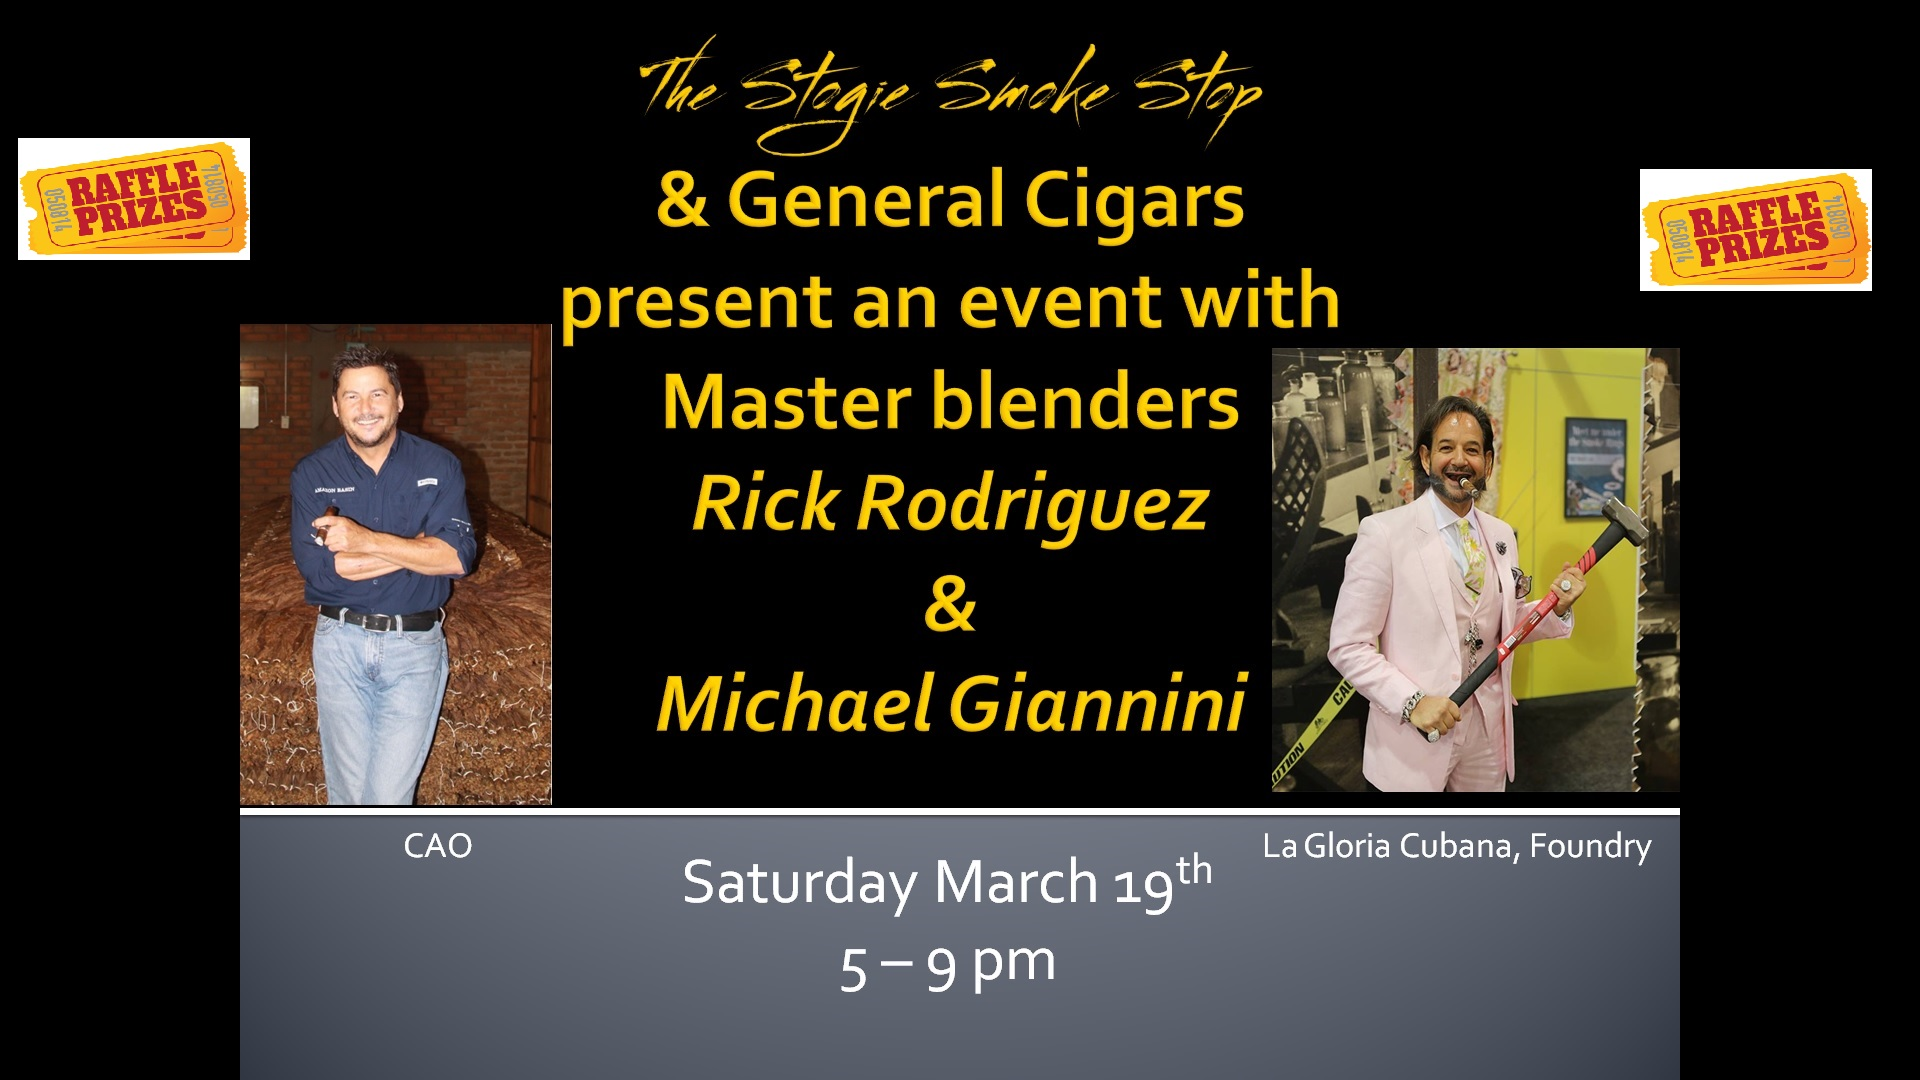 General Cigar Event with master blenders Rick Rodriguez & Michael Giannini Saturday March 19th 5 - 9 pm